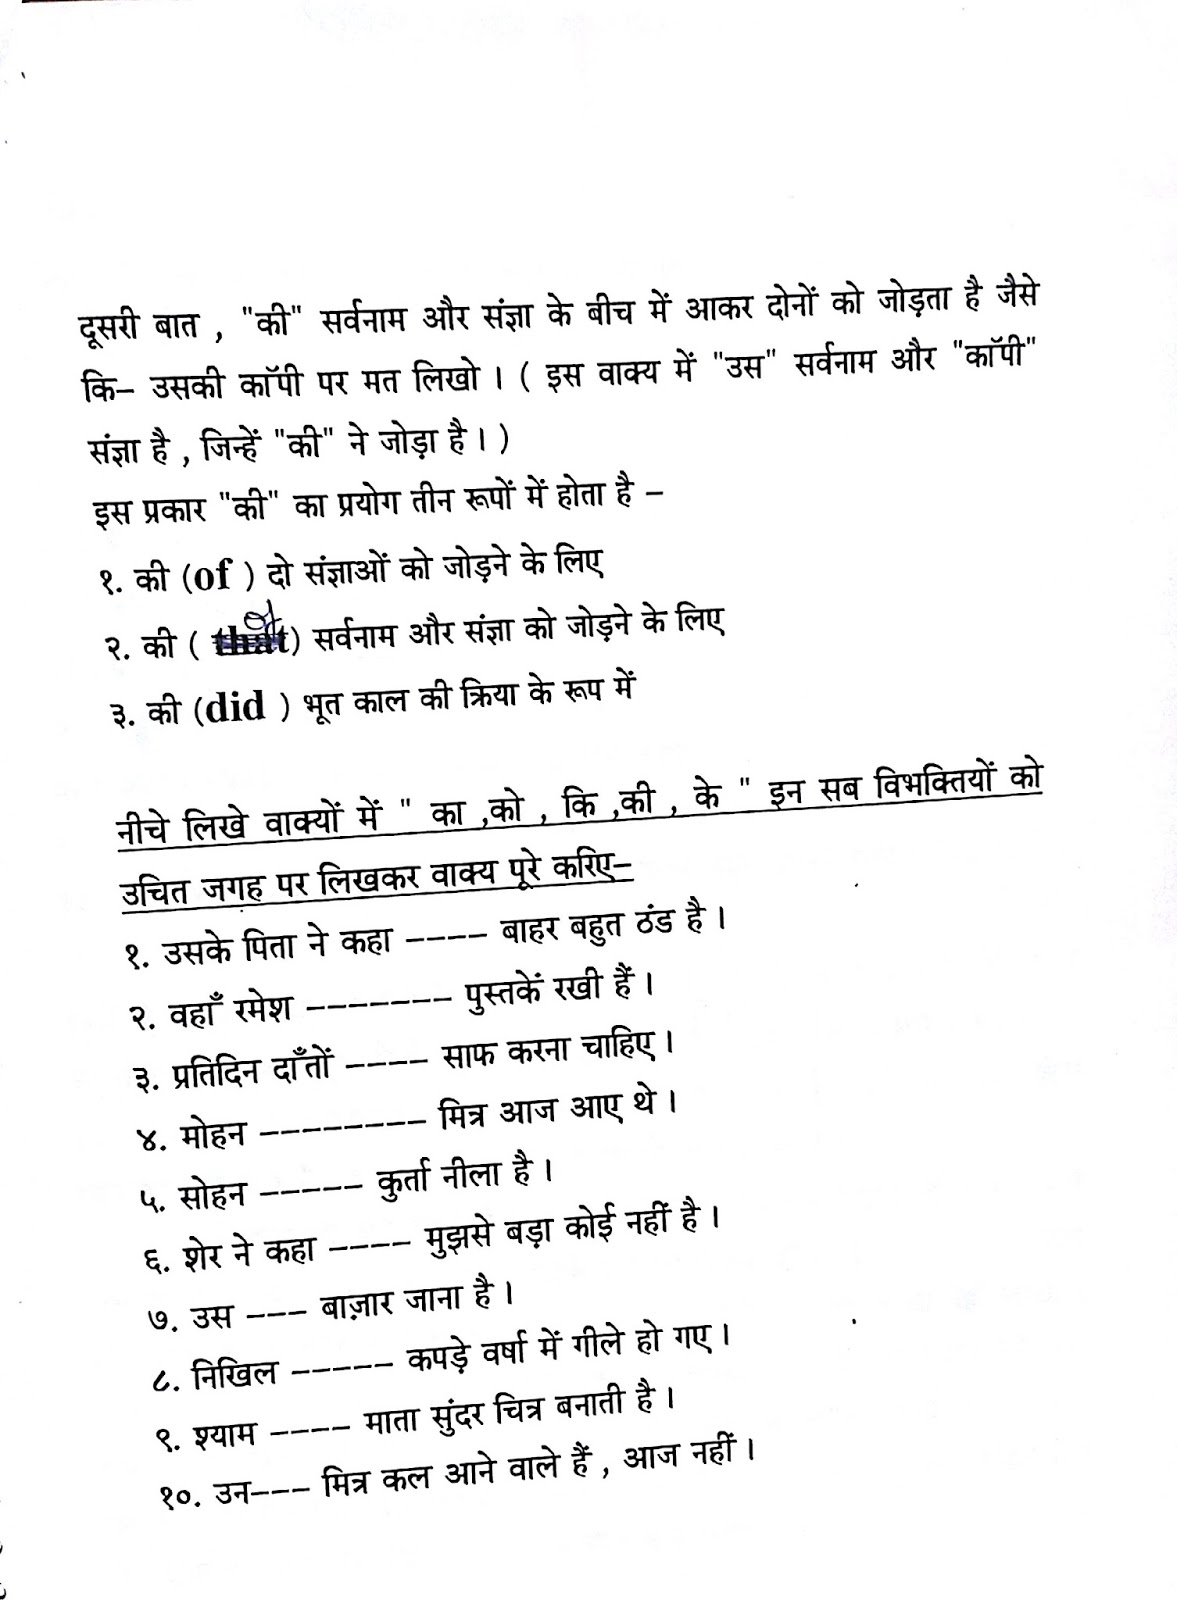 ... for classes 56 7 8 cases : Hindi Grammar Worksheets For Class 7 Icse